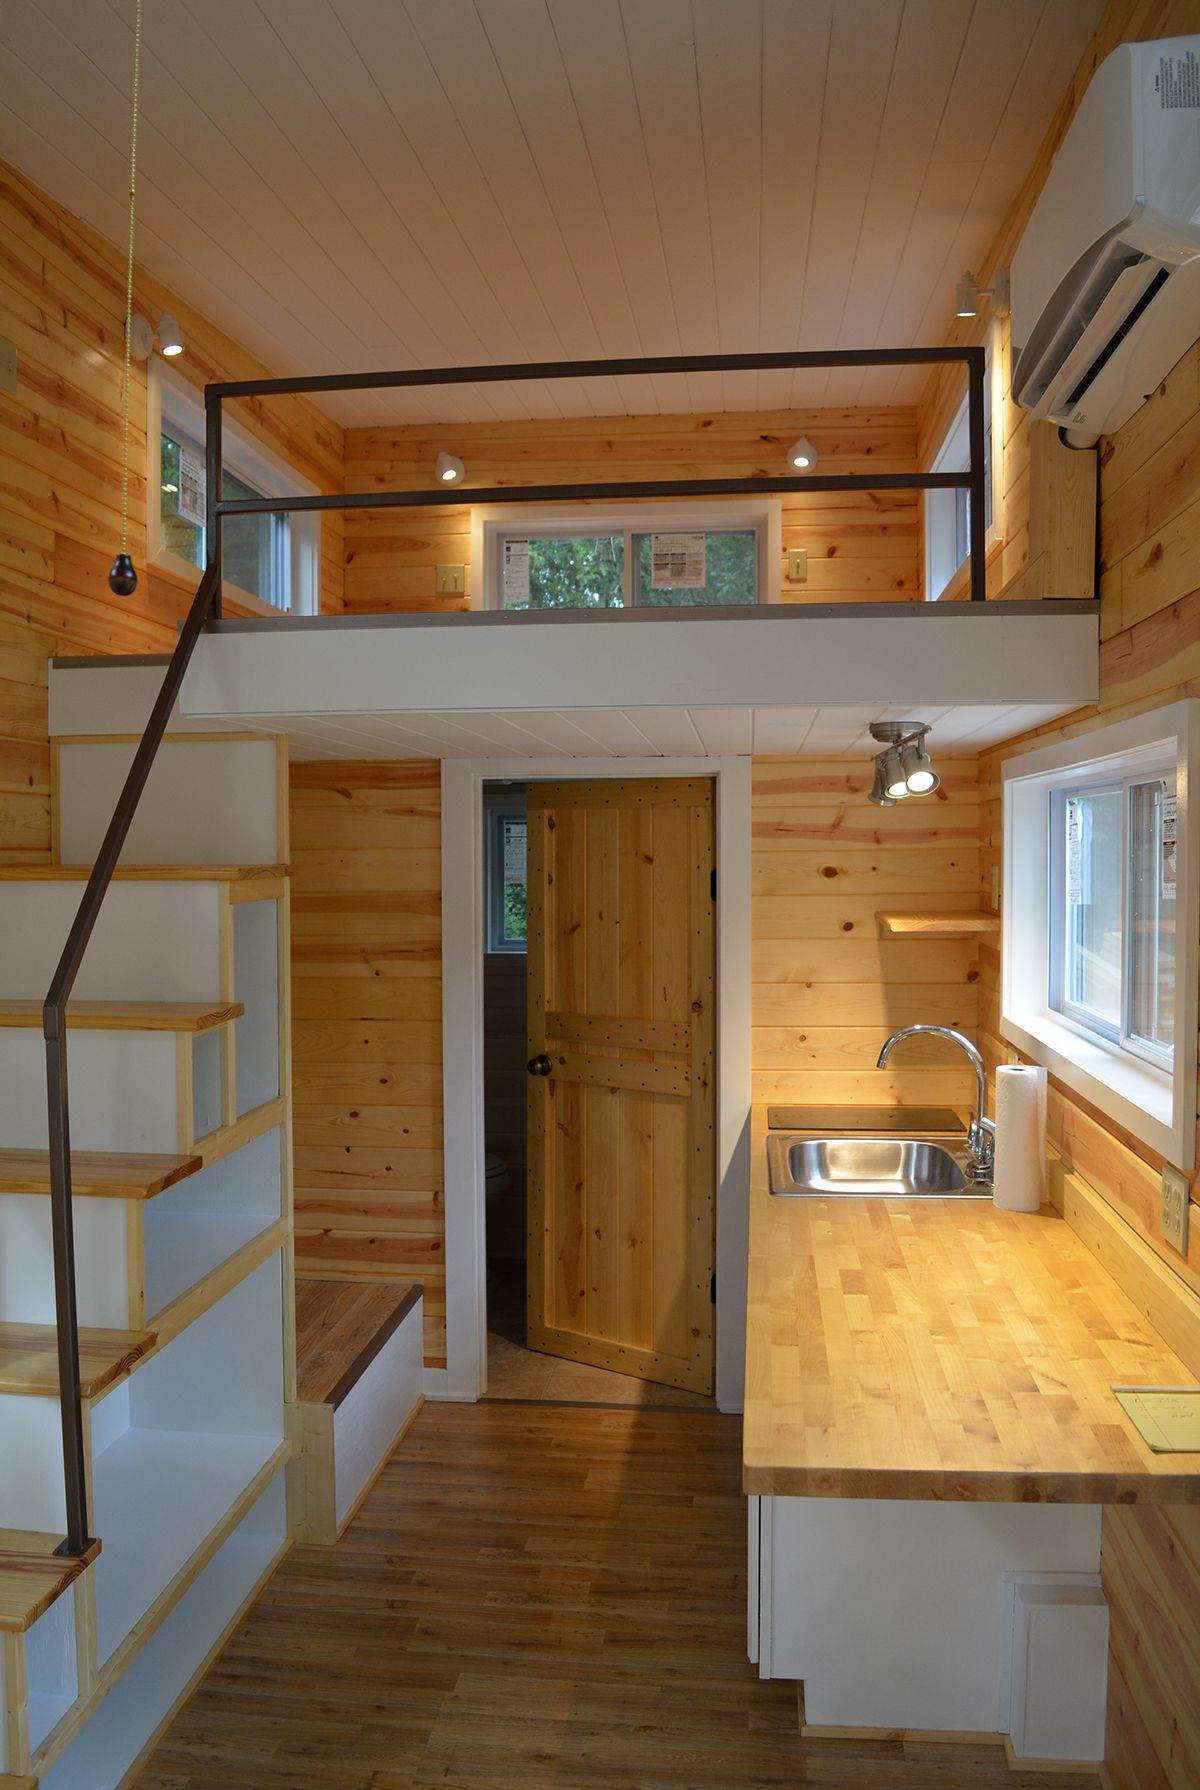 Functional Tiny House Tiny House For Sale In Opp